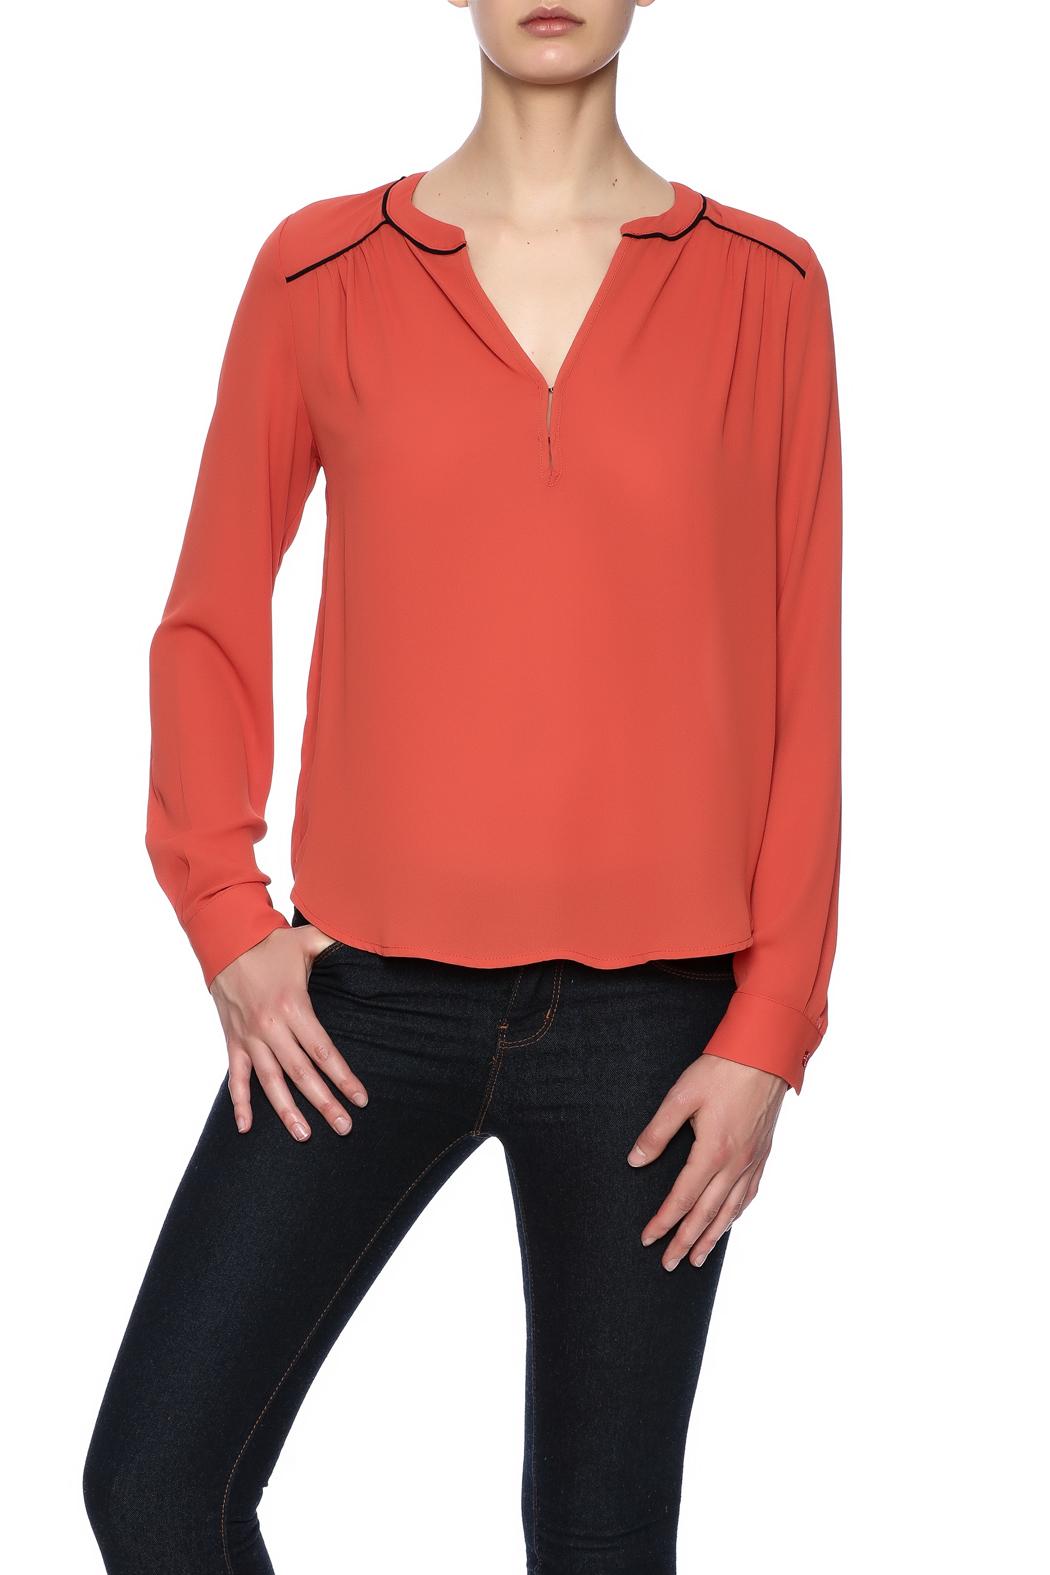 0fc6a3b2394d9 Lumiere Burnt Orange Blouse From North S By Marilisa Fashion